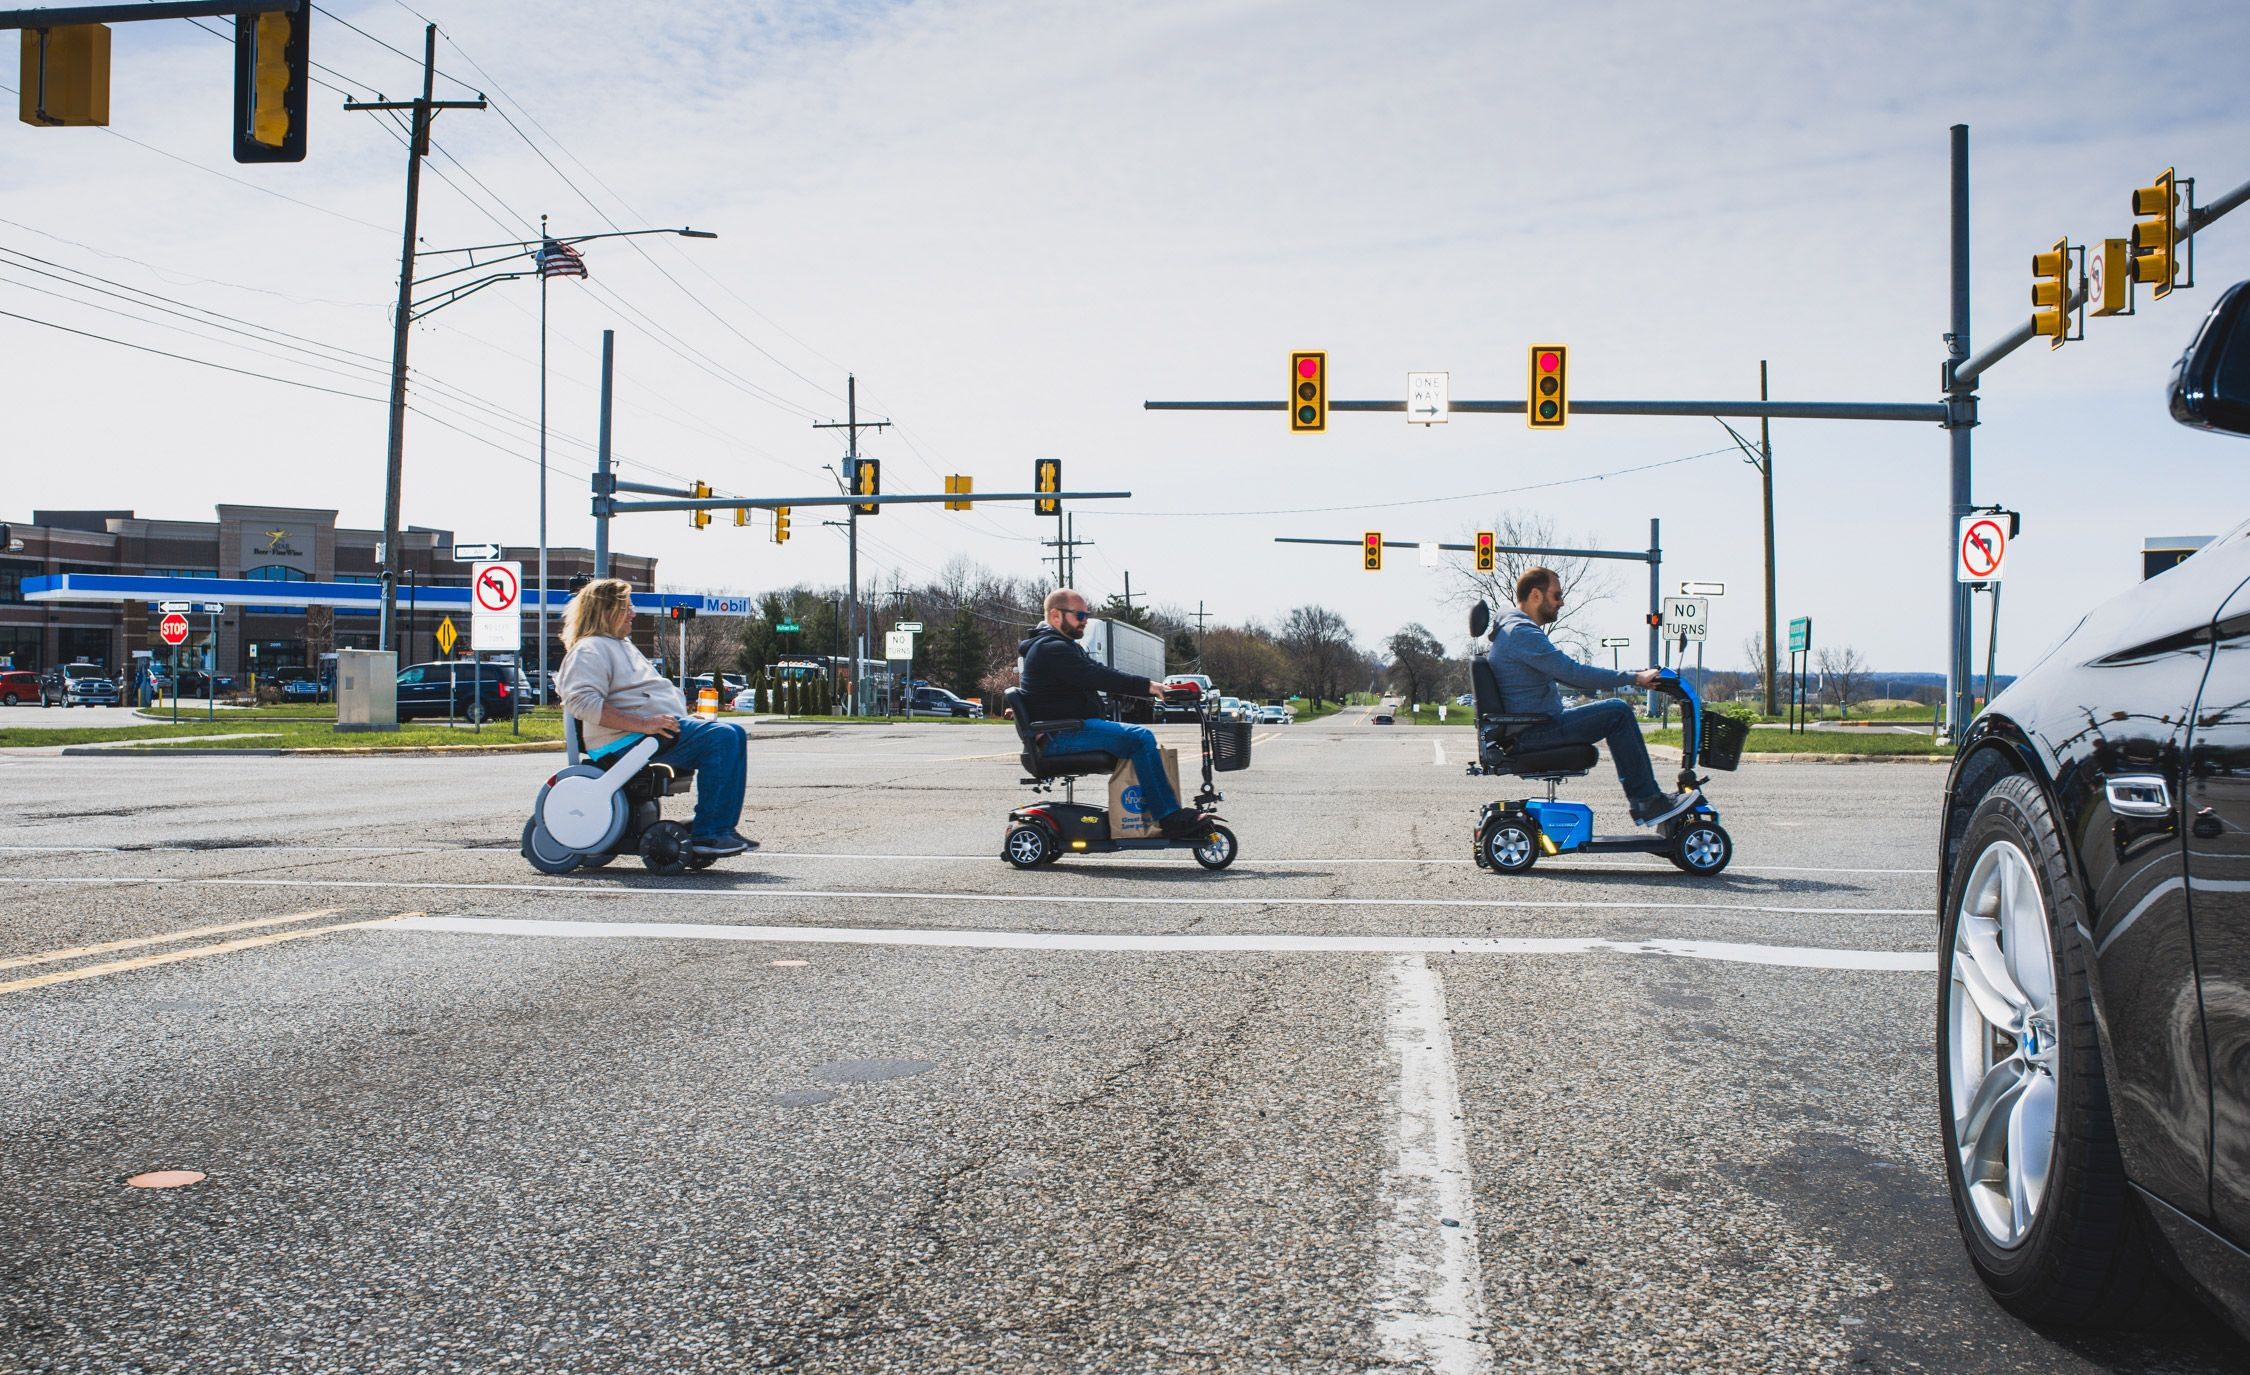 Mobility Scooter Showdown: Whill Model A vs. Golden Tech Buzzaround EX vs. Pride Mobility Victory 10 LX